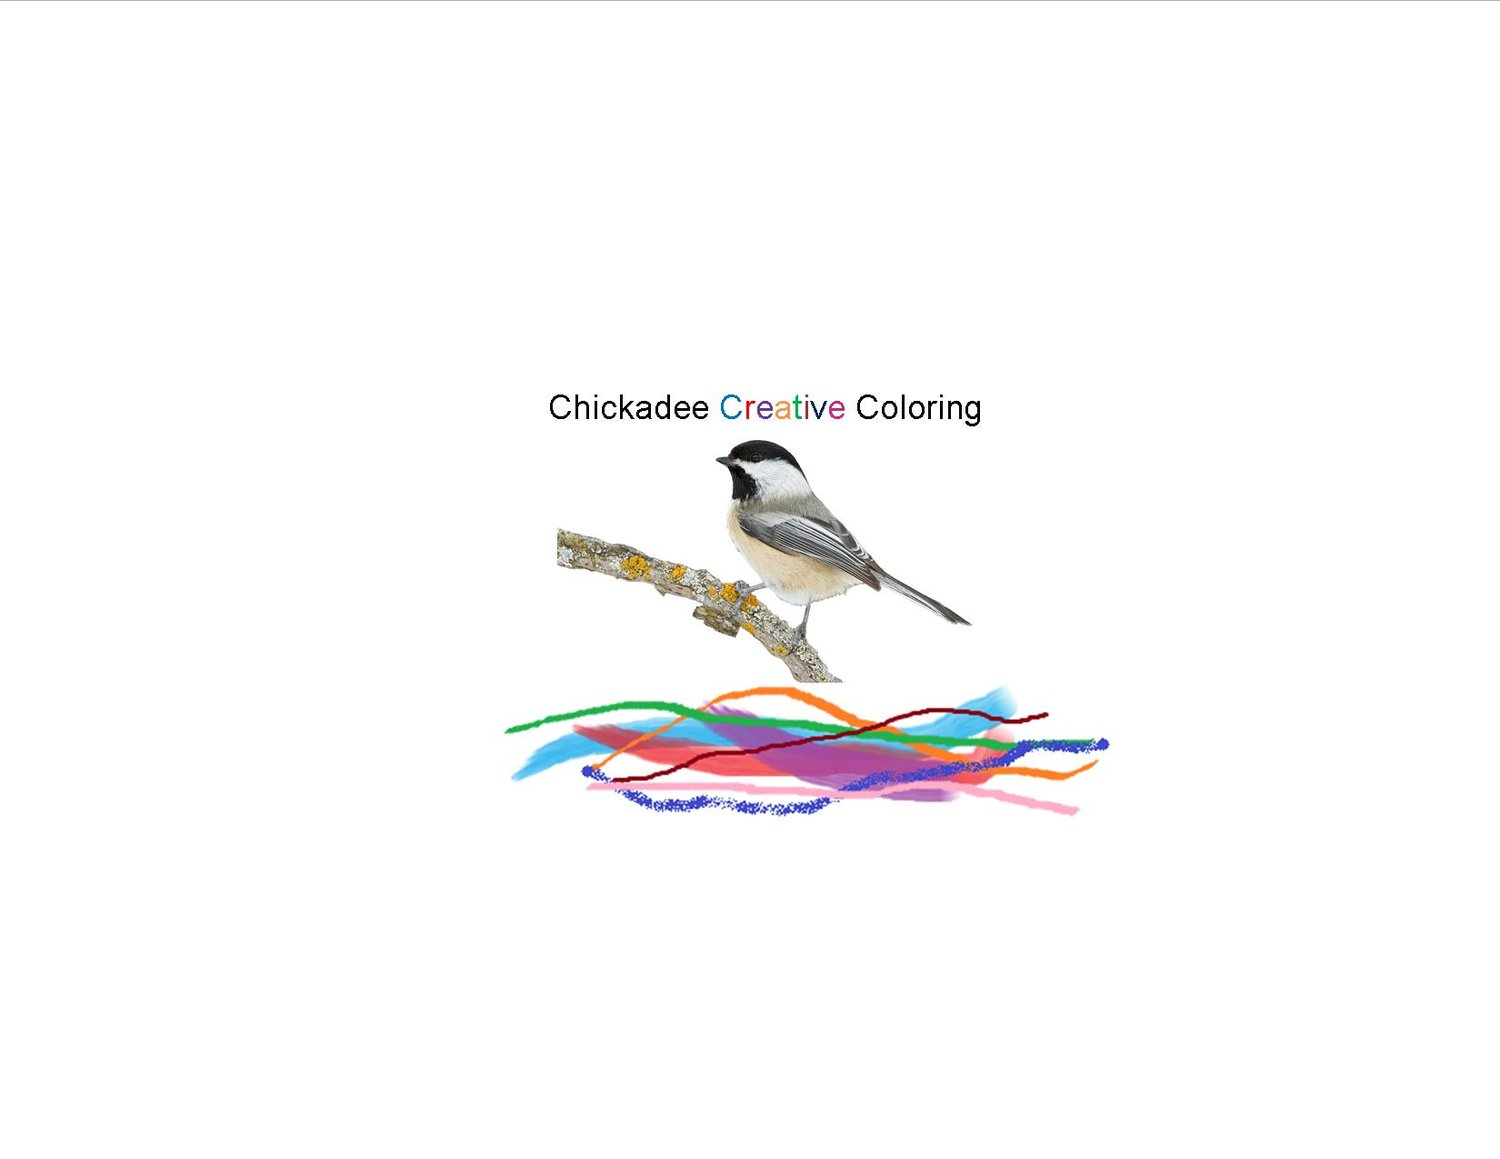 Publishers for adult coloring books - Chickadee Creative Coloring Chickadee Creative Coloring Adult Coloring Book Publishers